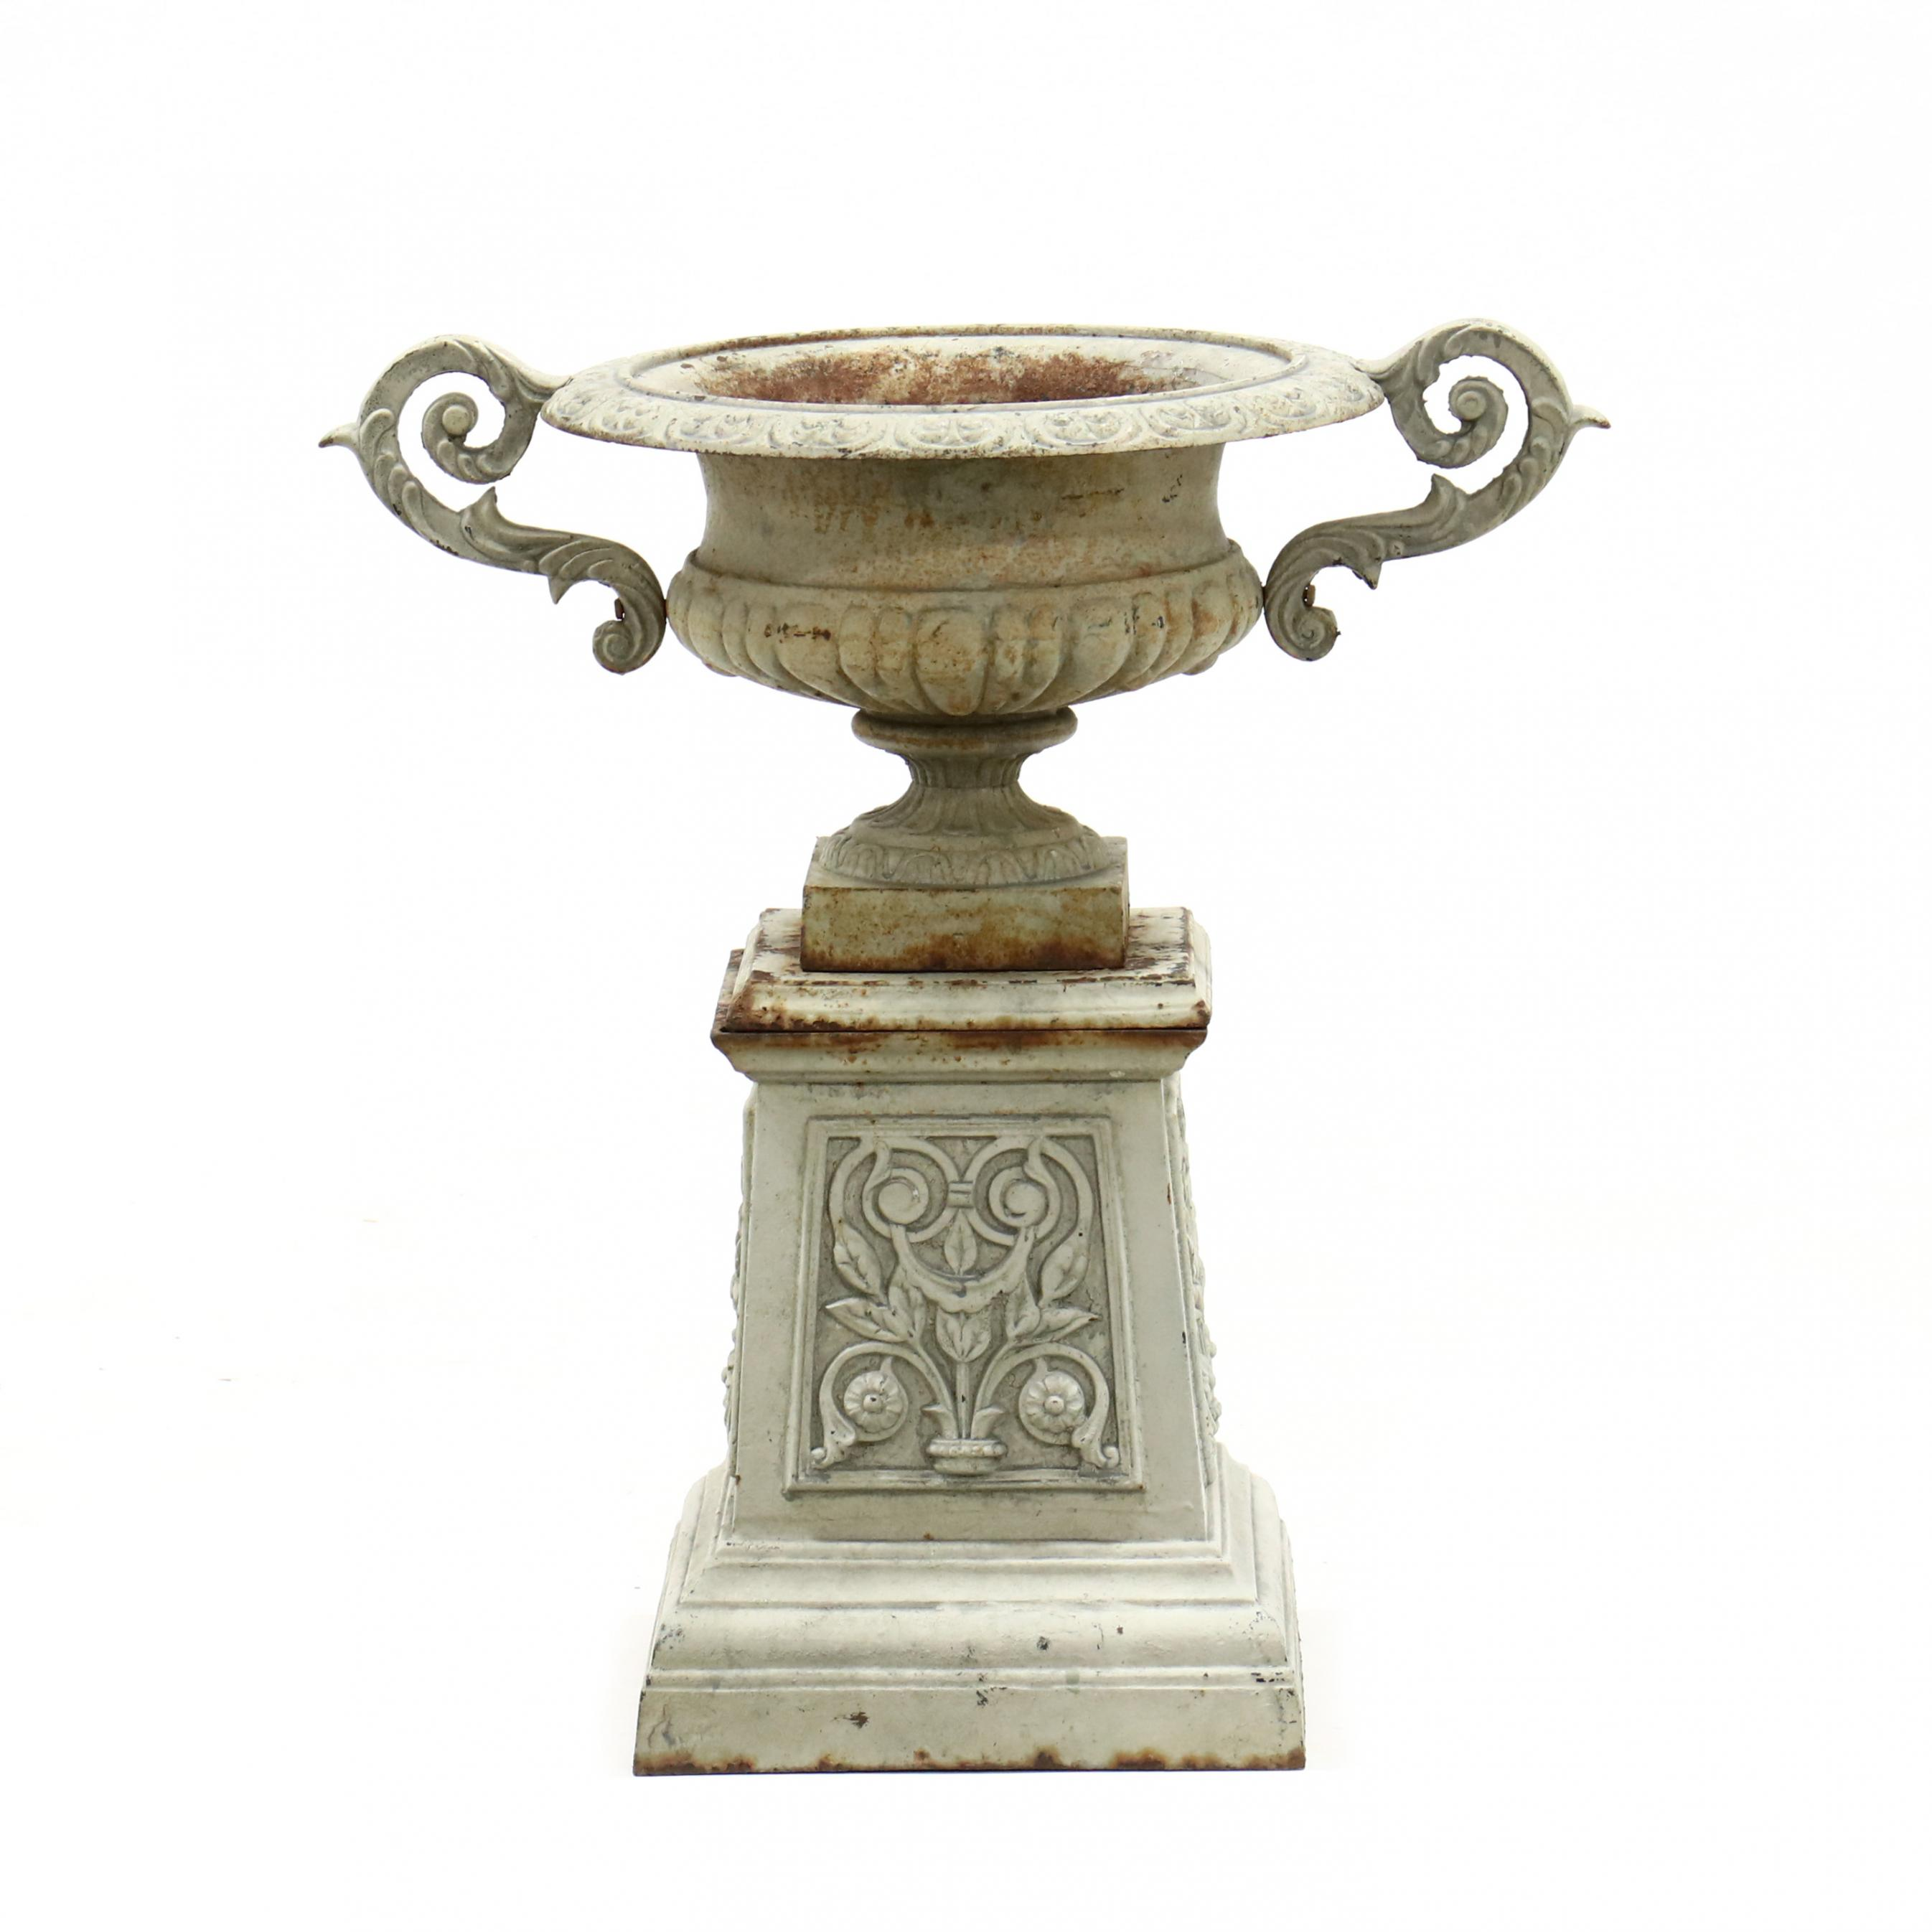 vintage-classical-style-garden-urn-on-stand